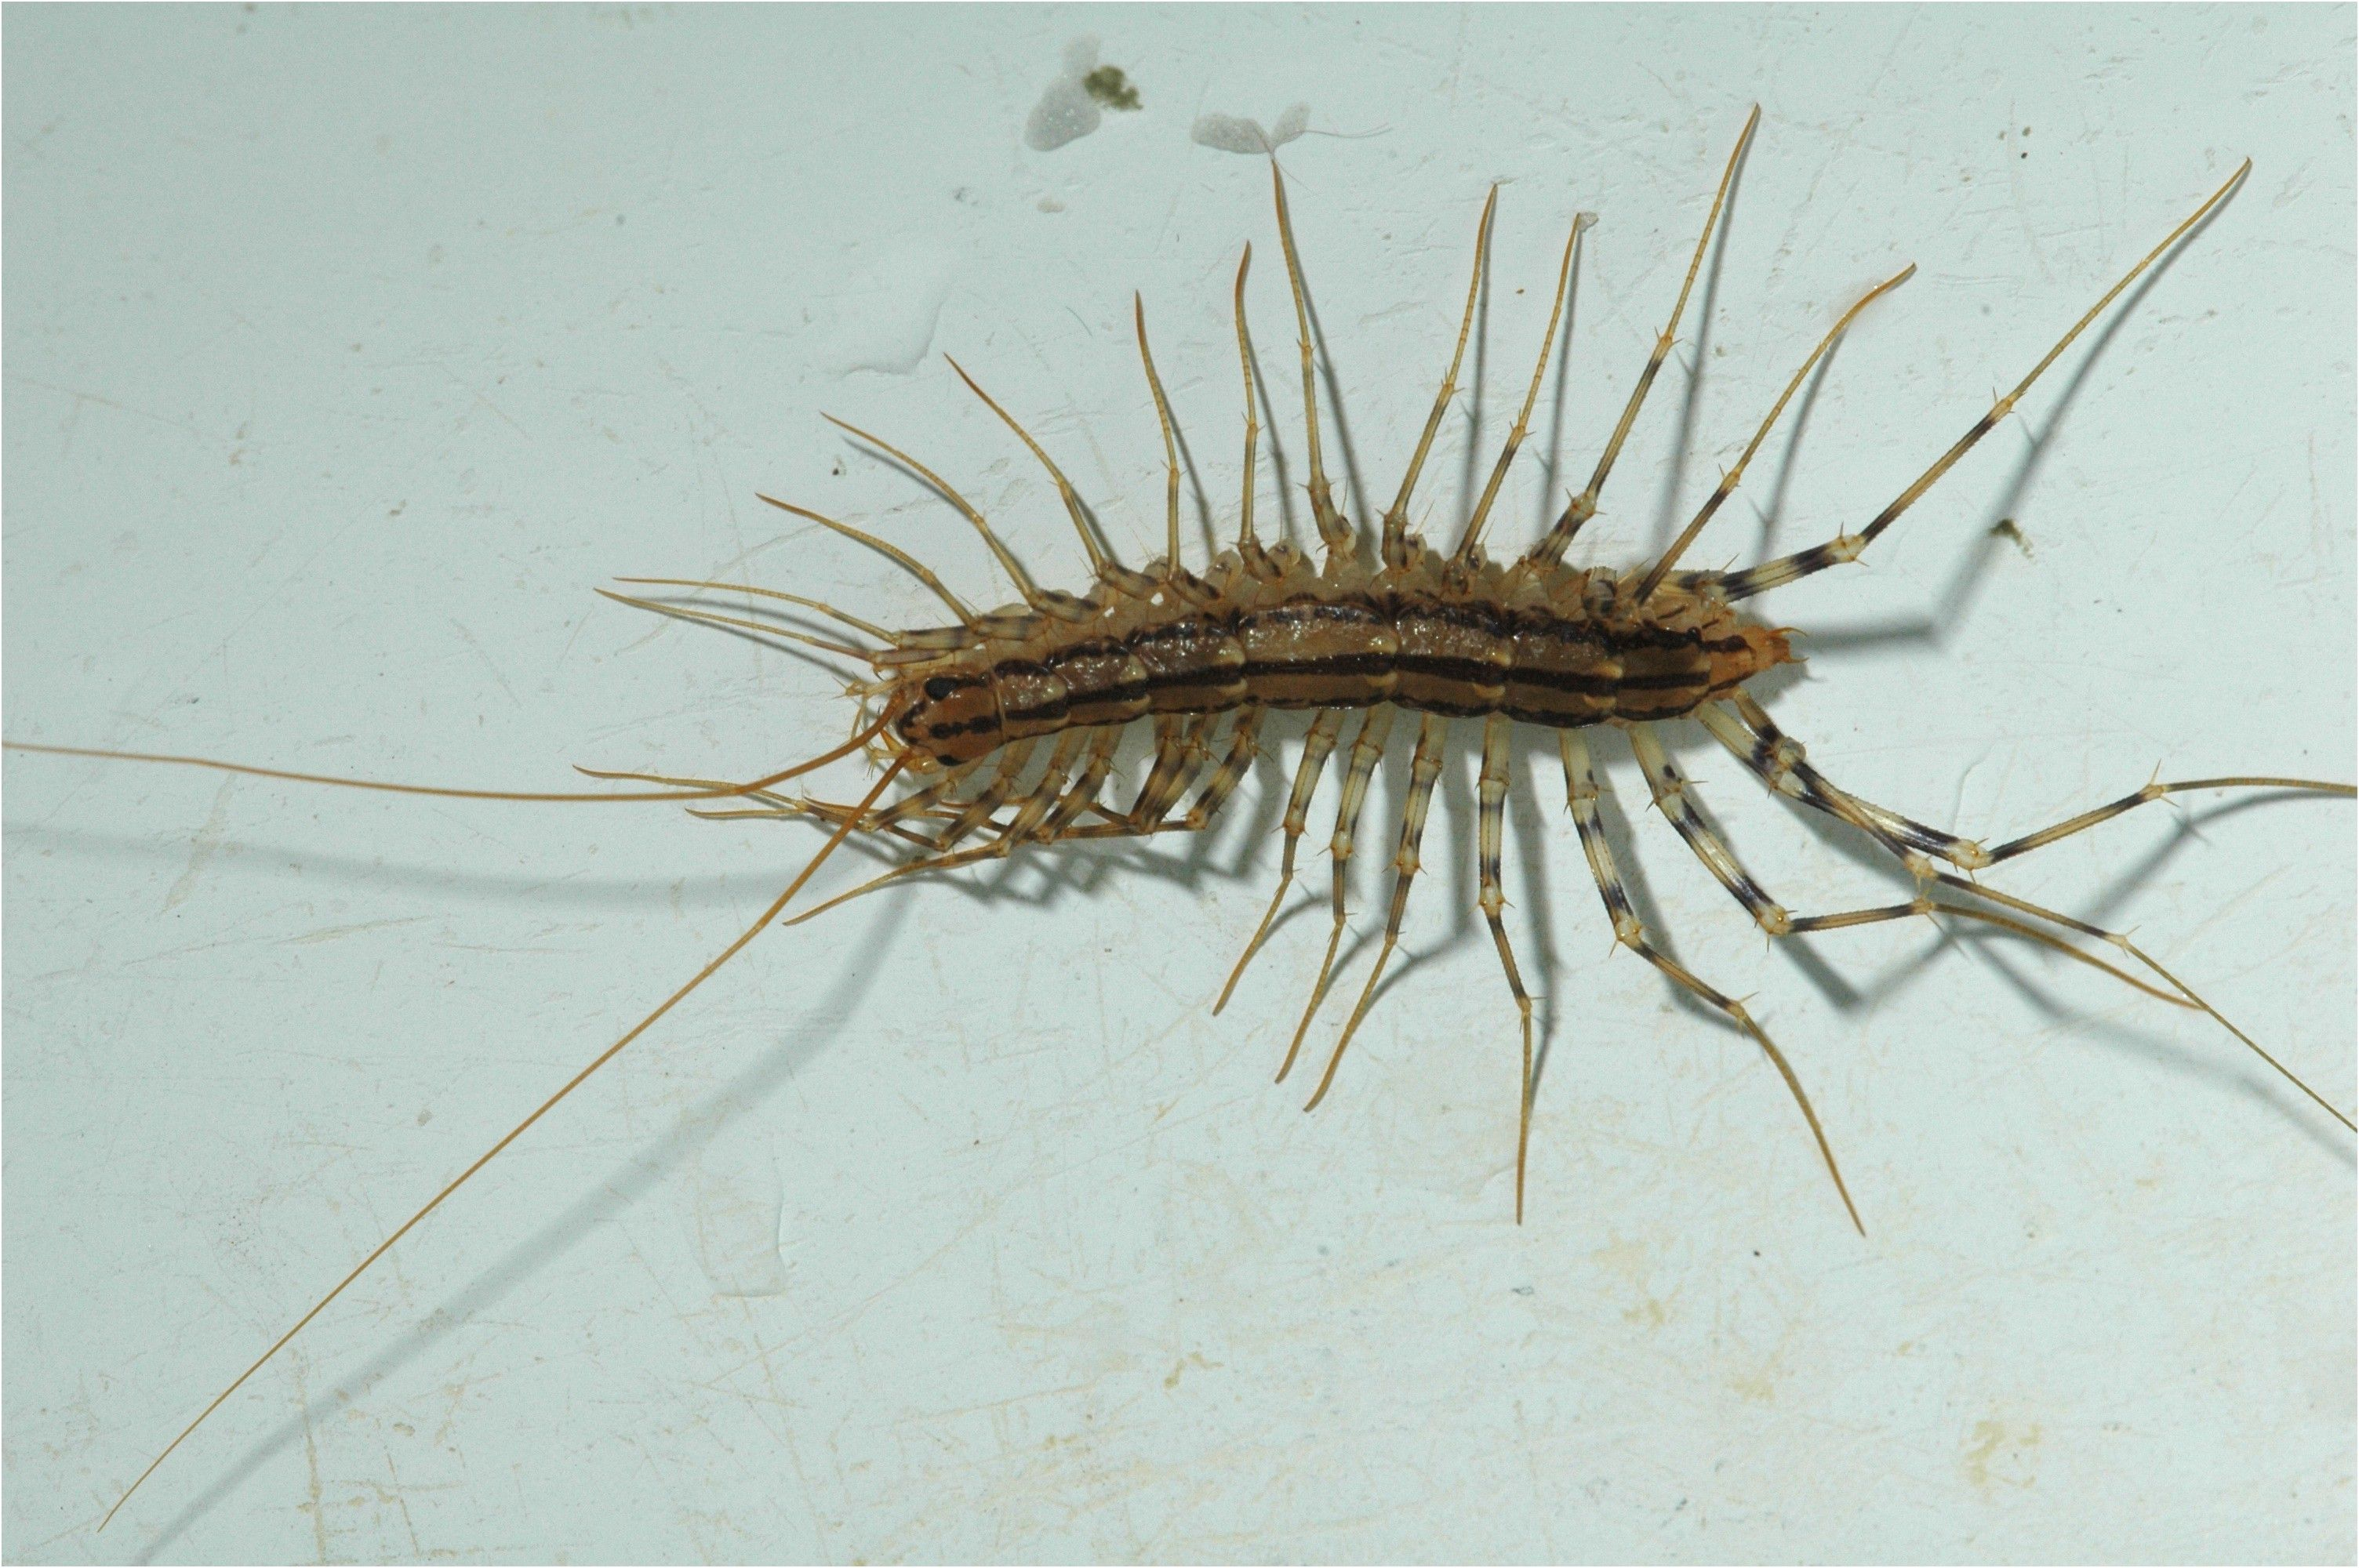 sowbugs millipedes and centipedes in the home insects from Water ...